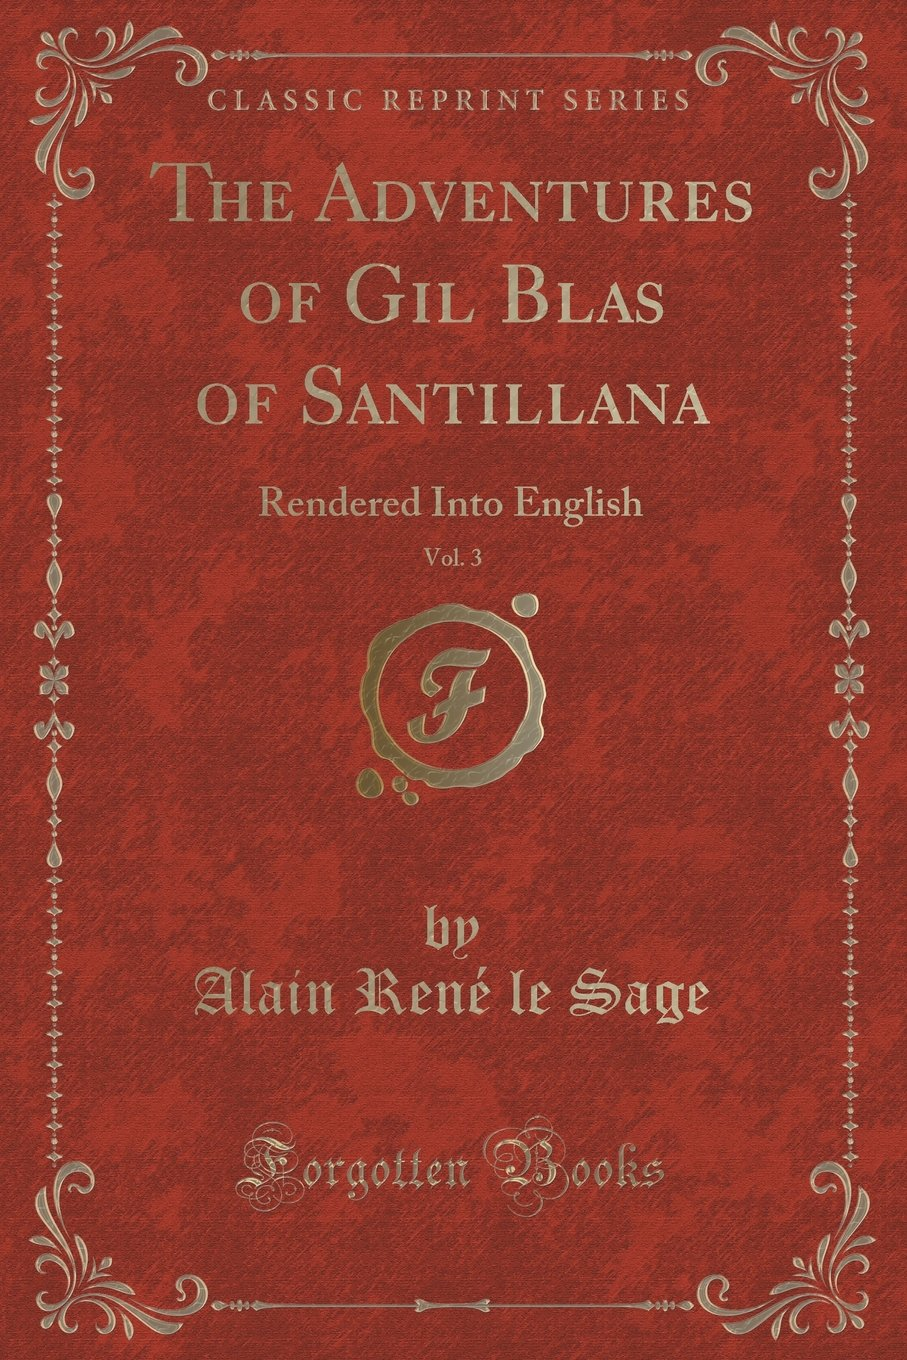 The Adventures of Gil Blas of Santillana, Vol. 3: Rendered Into English (Classic Reprint) ebook